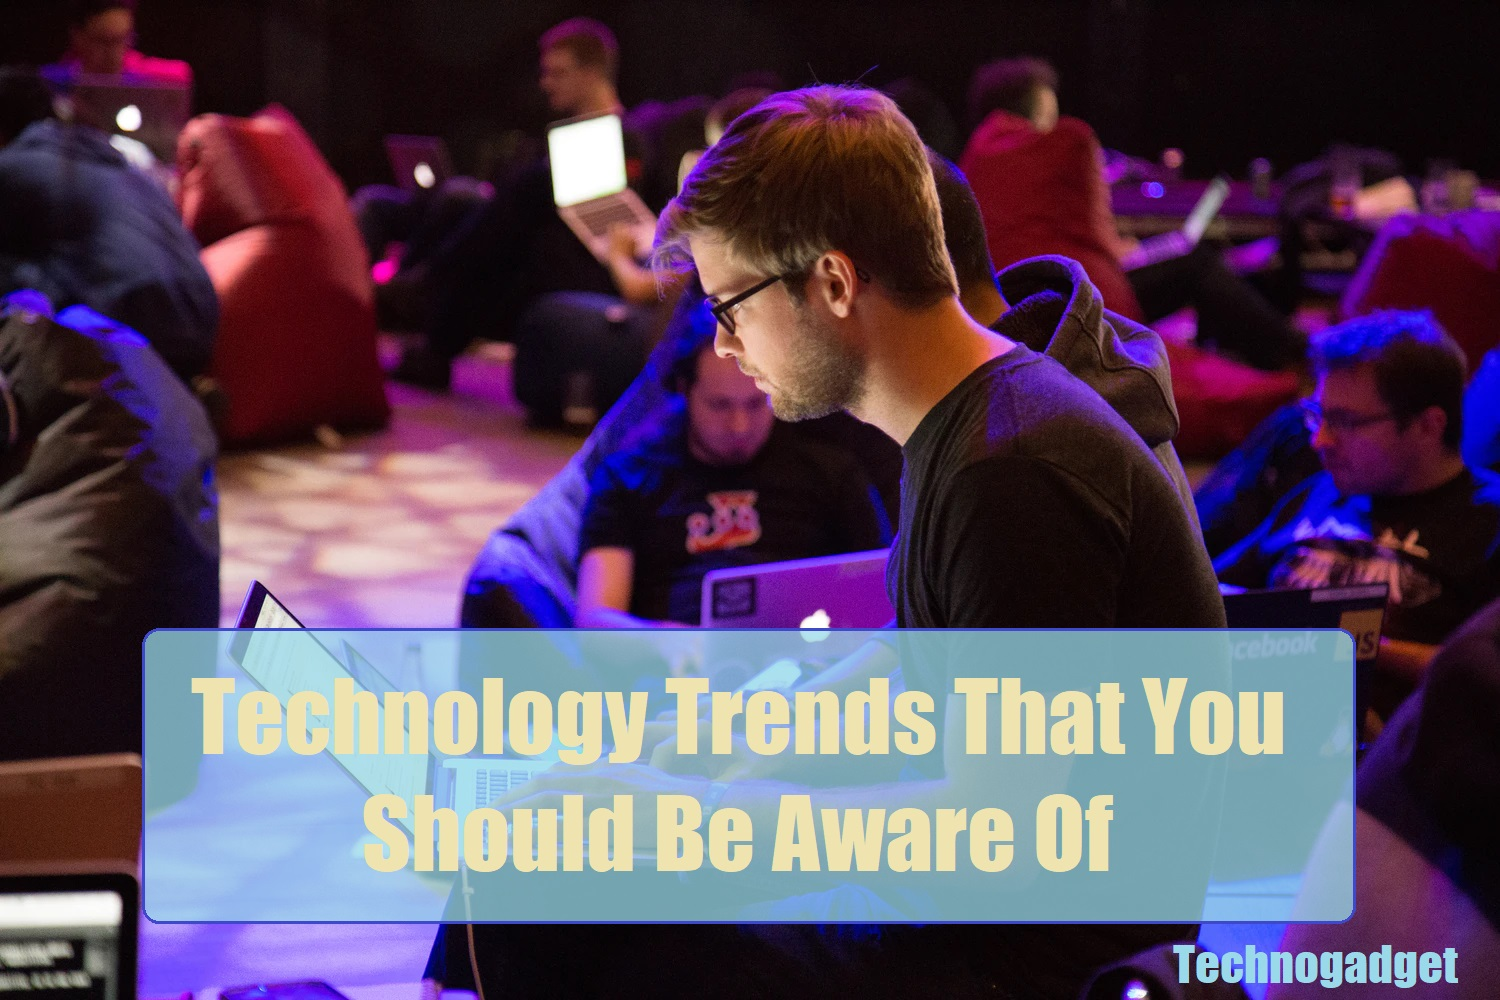 Technology Trends That You Should Be Aware Of